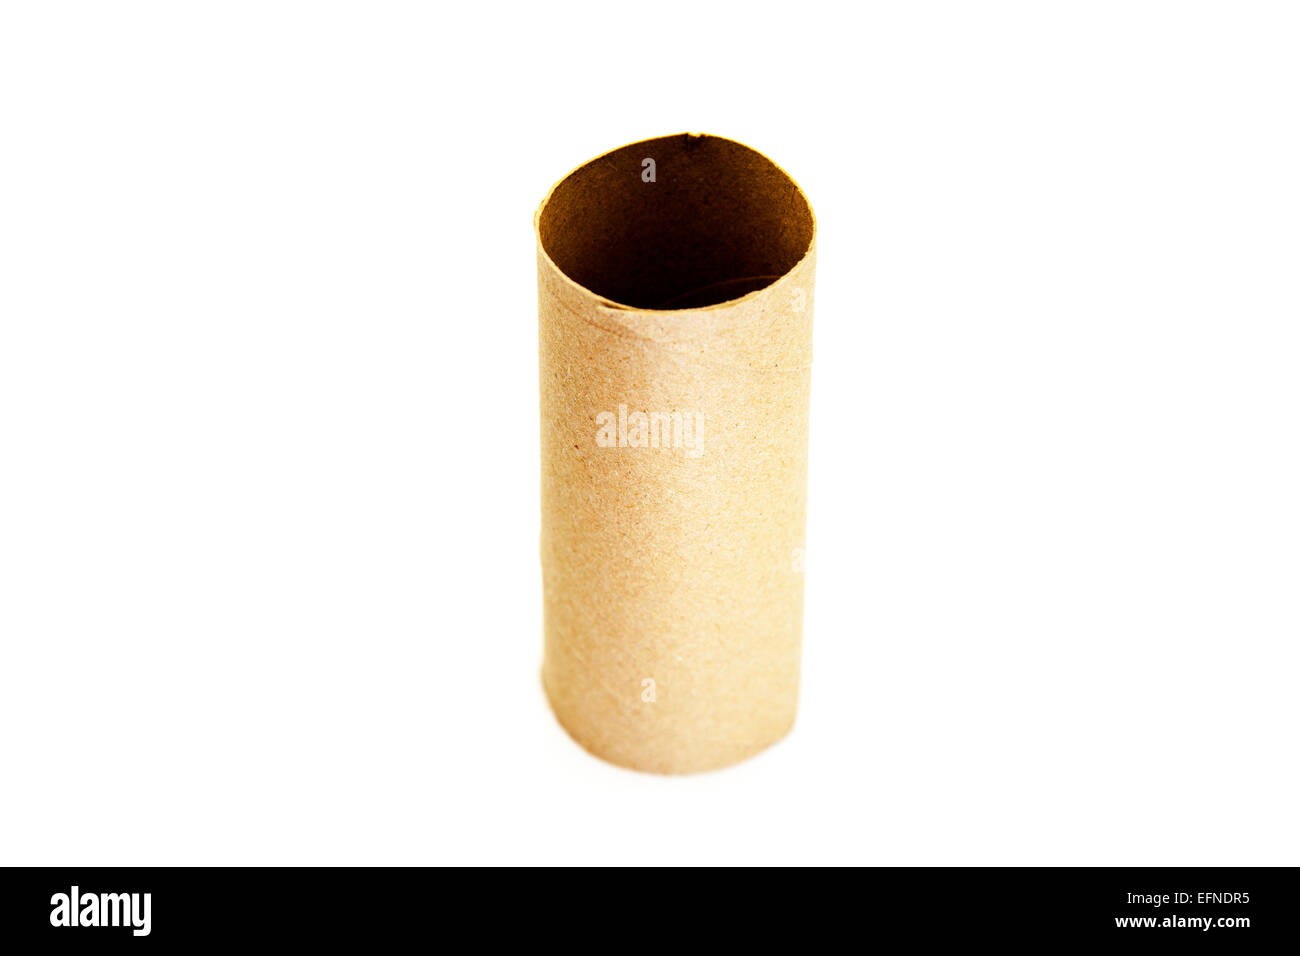 Empty Toilet Roll Stock Photos & Empty Toilet Roll Stock Images - Alamy